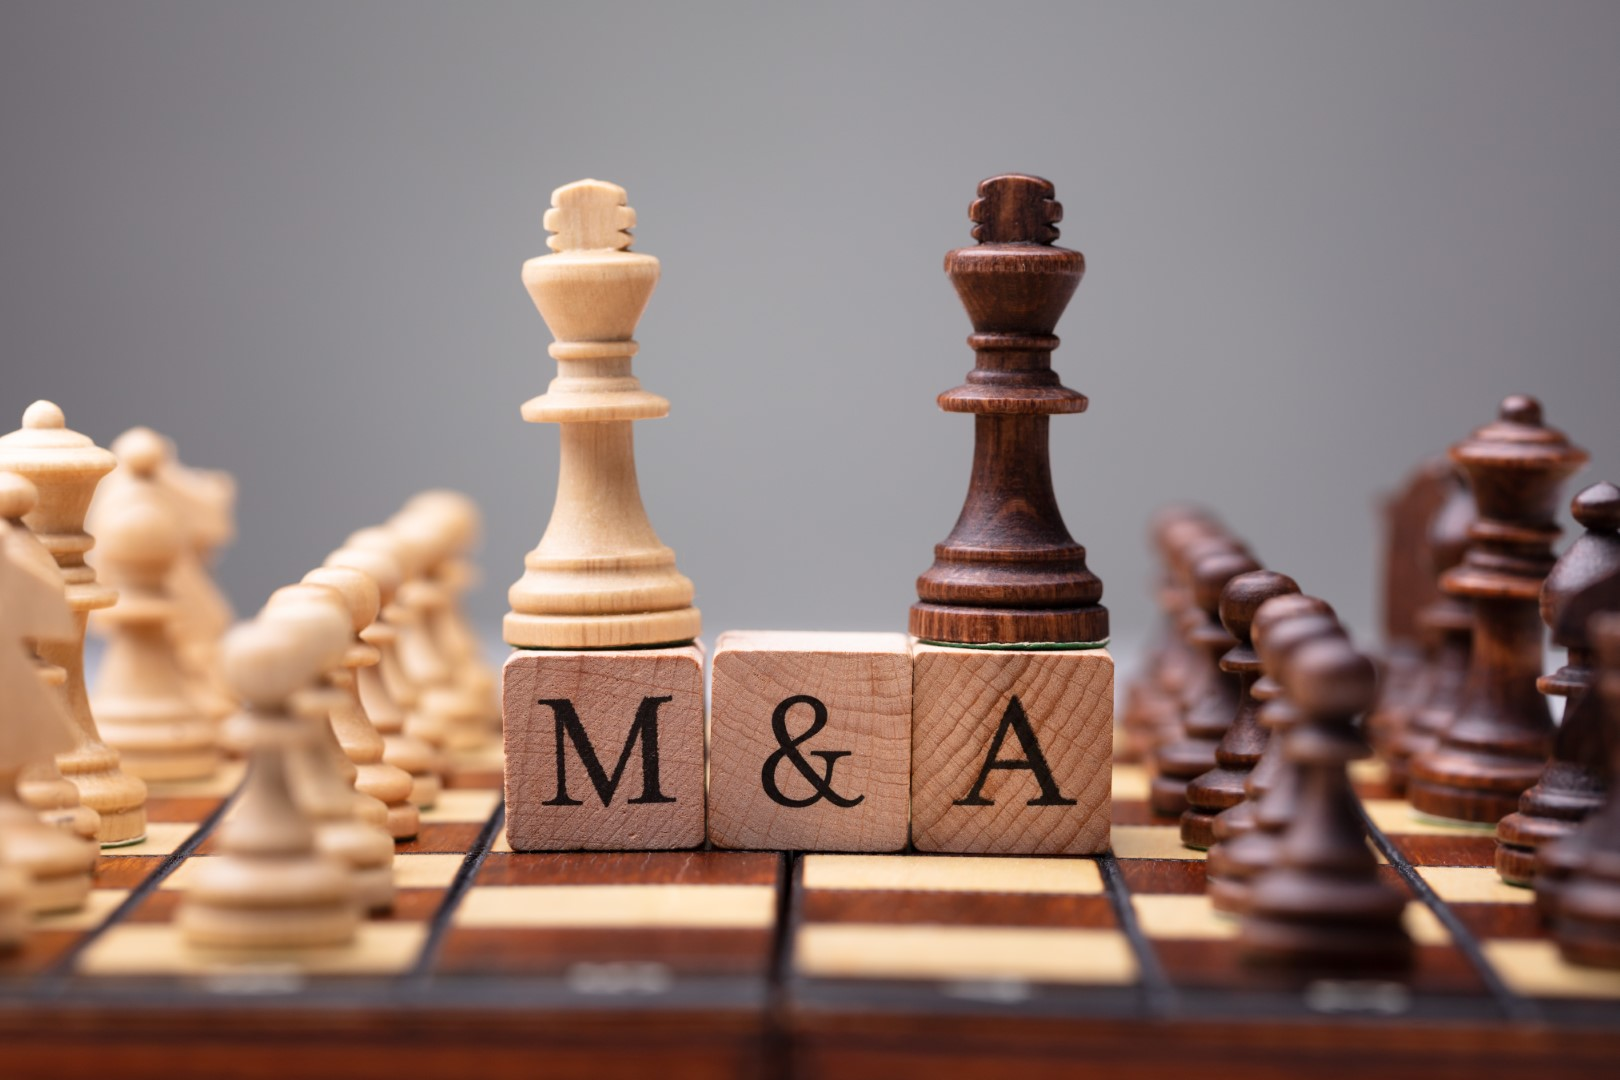 U.S. Banks: M&A Features Prominently on Q1 Calls